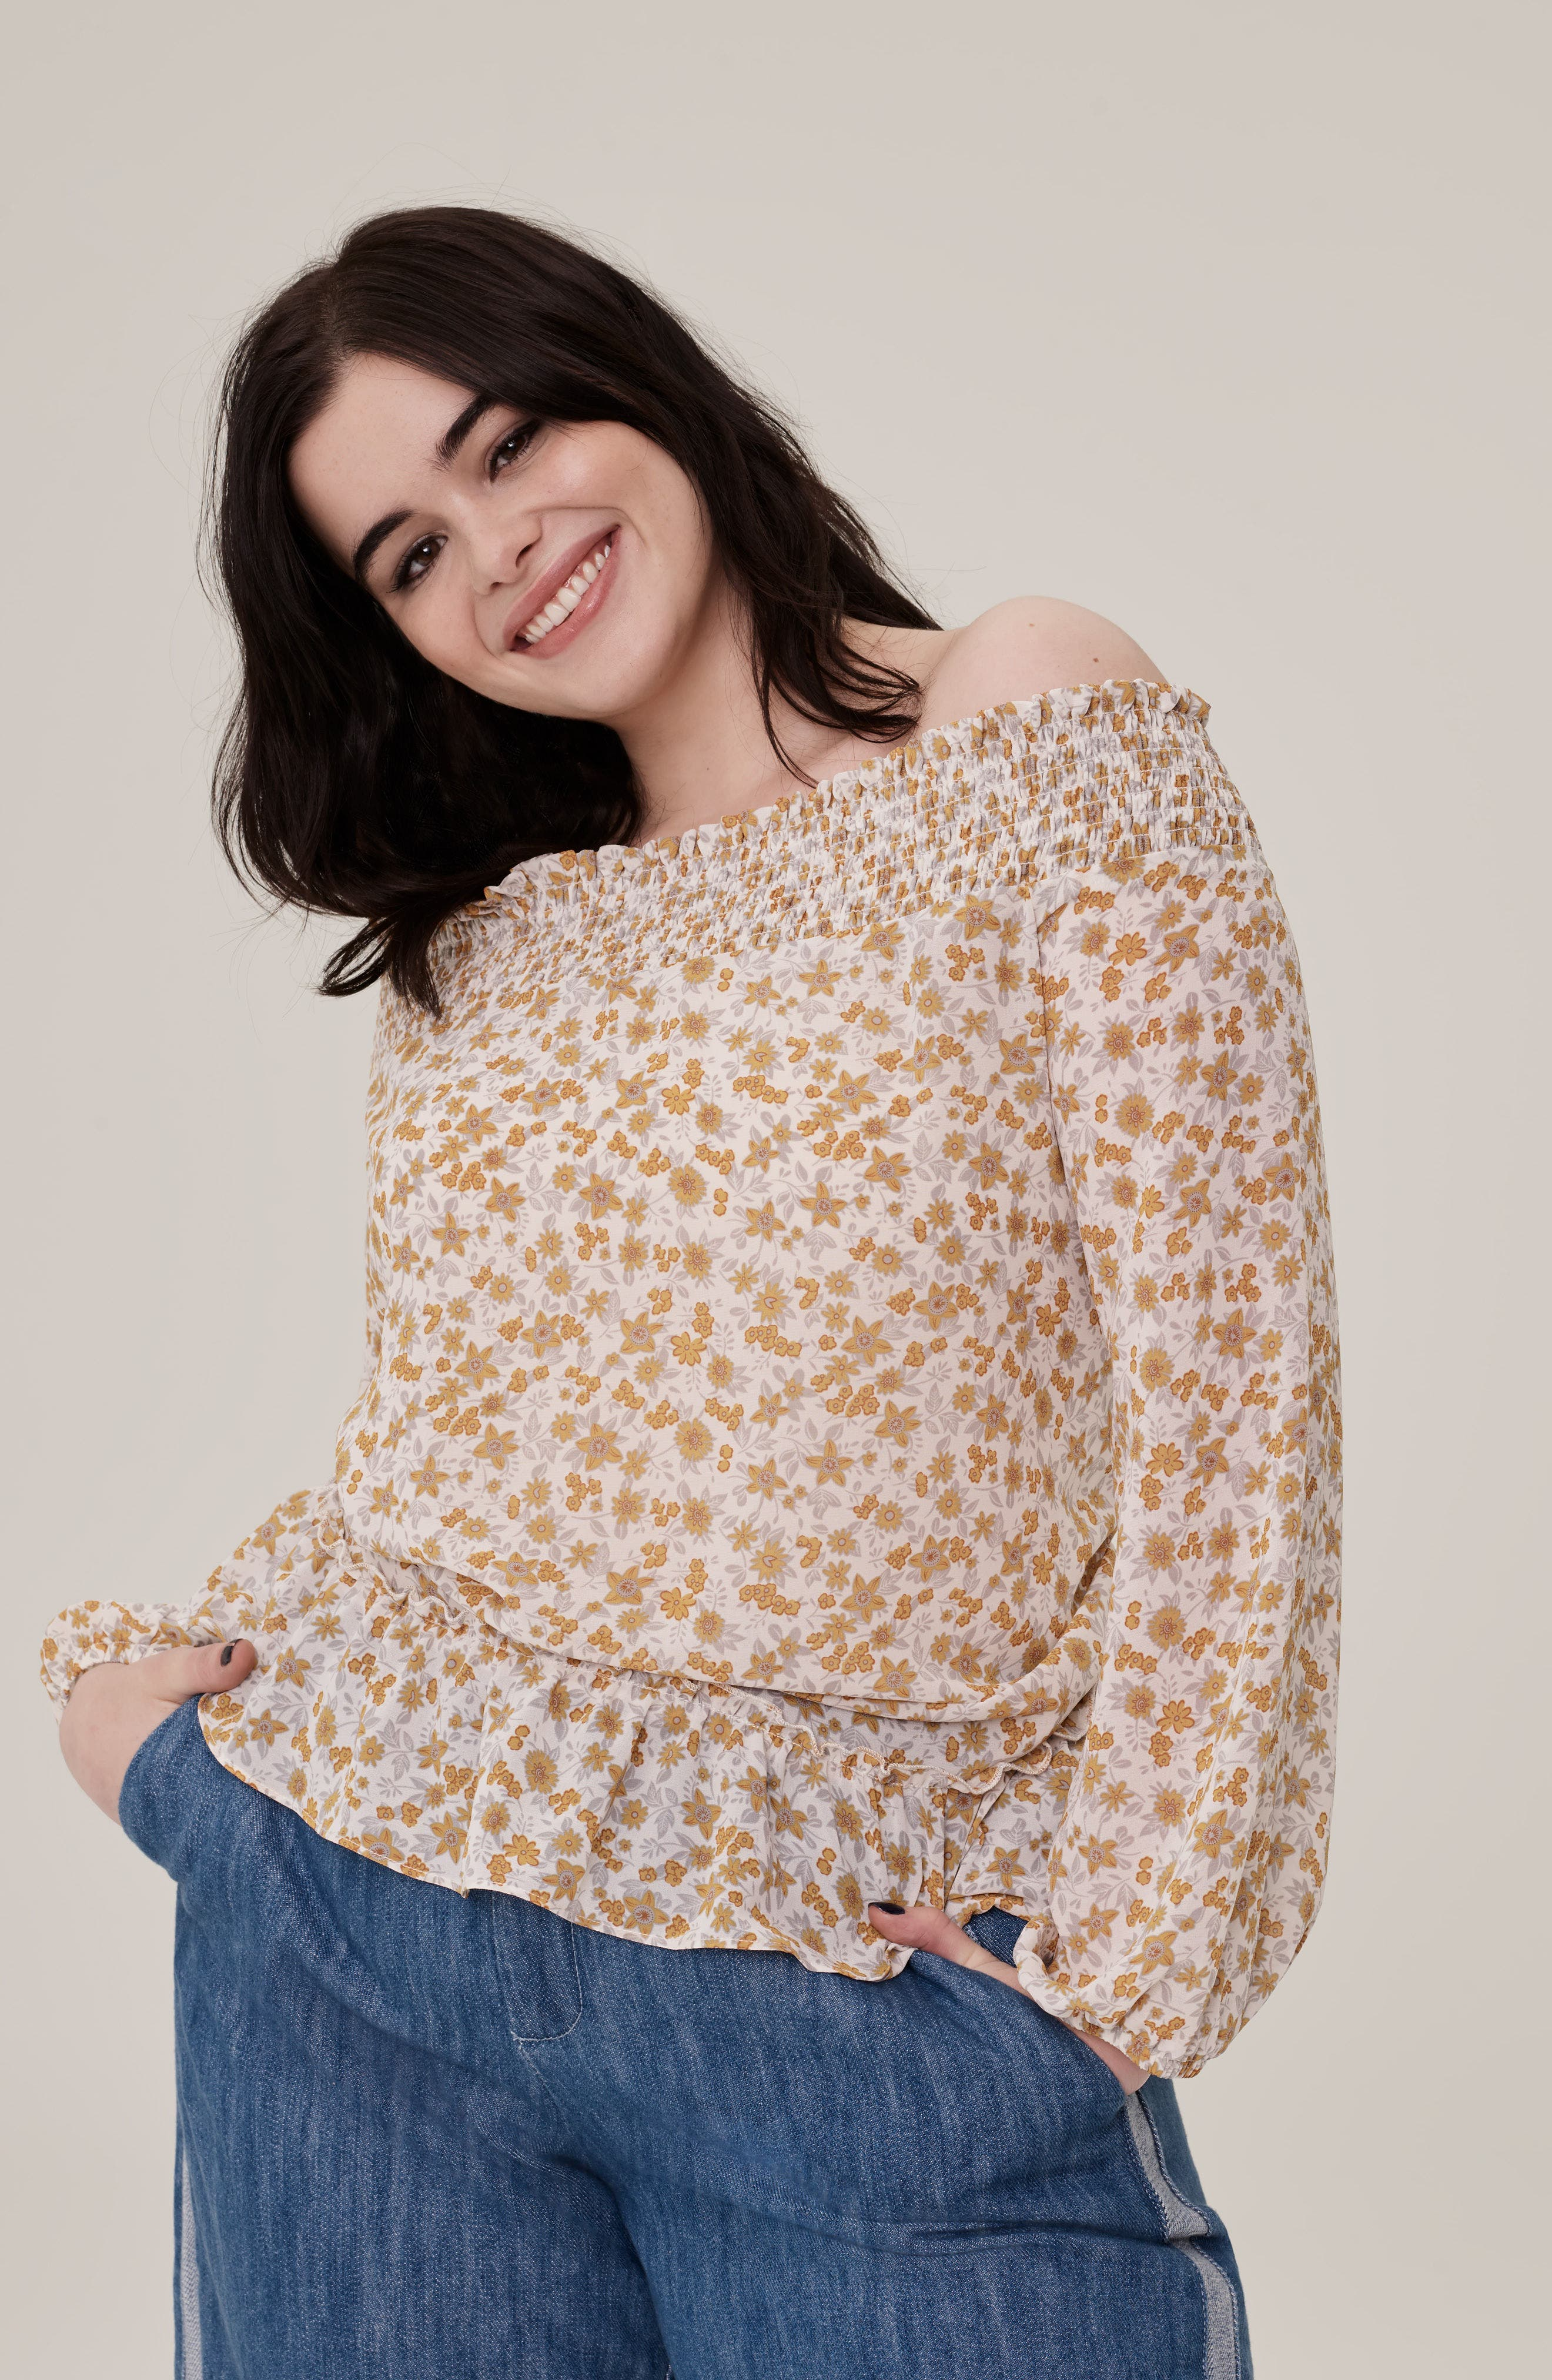 Floral Back Tie Off the Shoulder Blouse,                             Alternate thumbnail 8, color,                             760